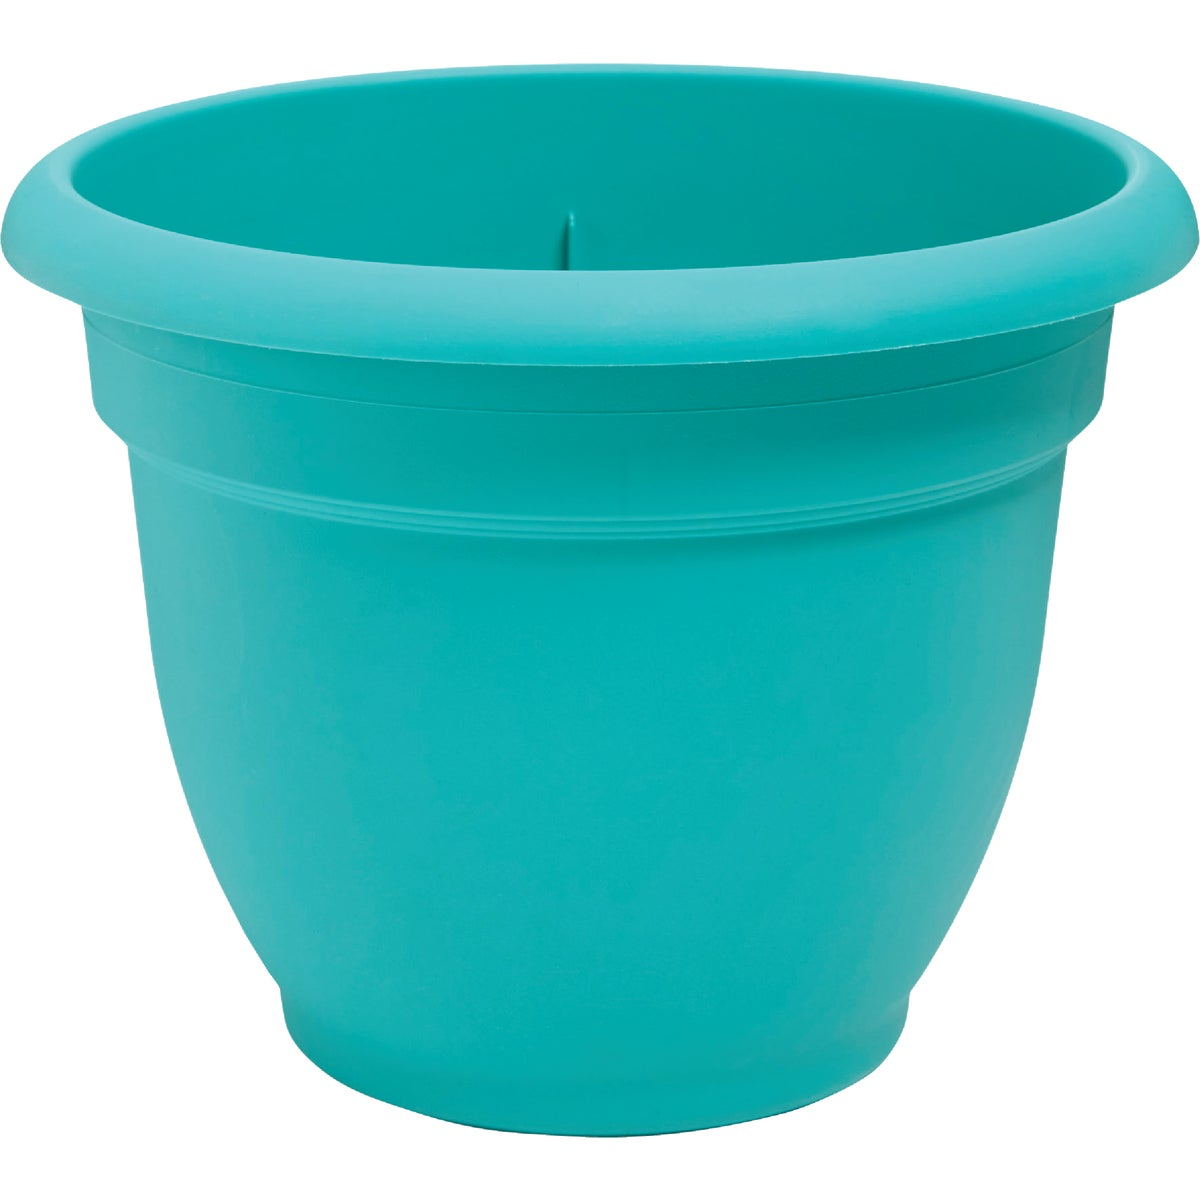 "6"" CPRI BREEZ ARIANA POT - 465061-1001 by Fiskars Brands Inc"